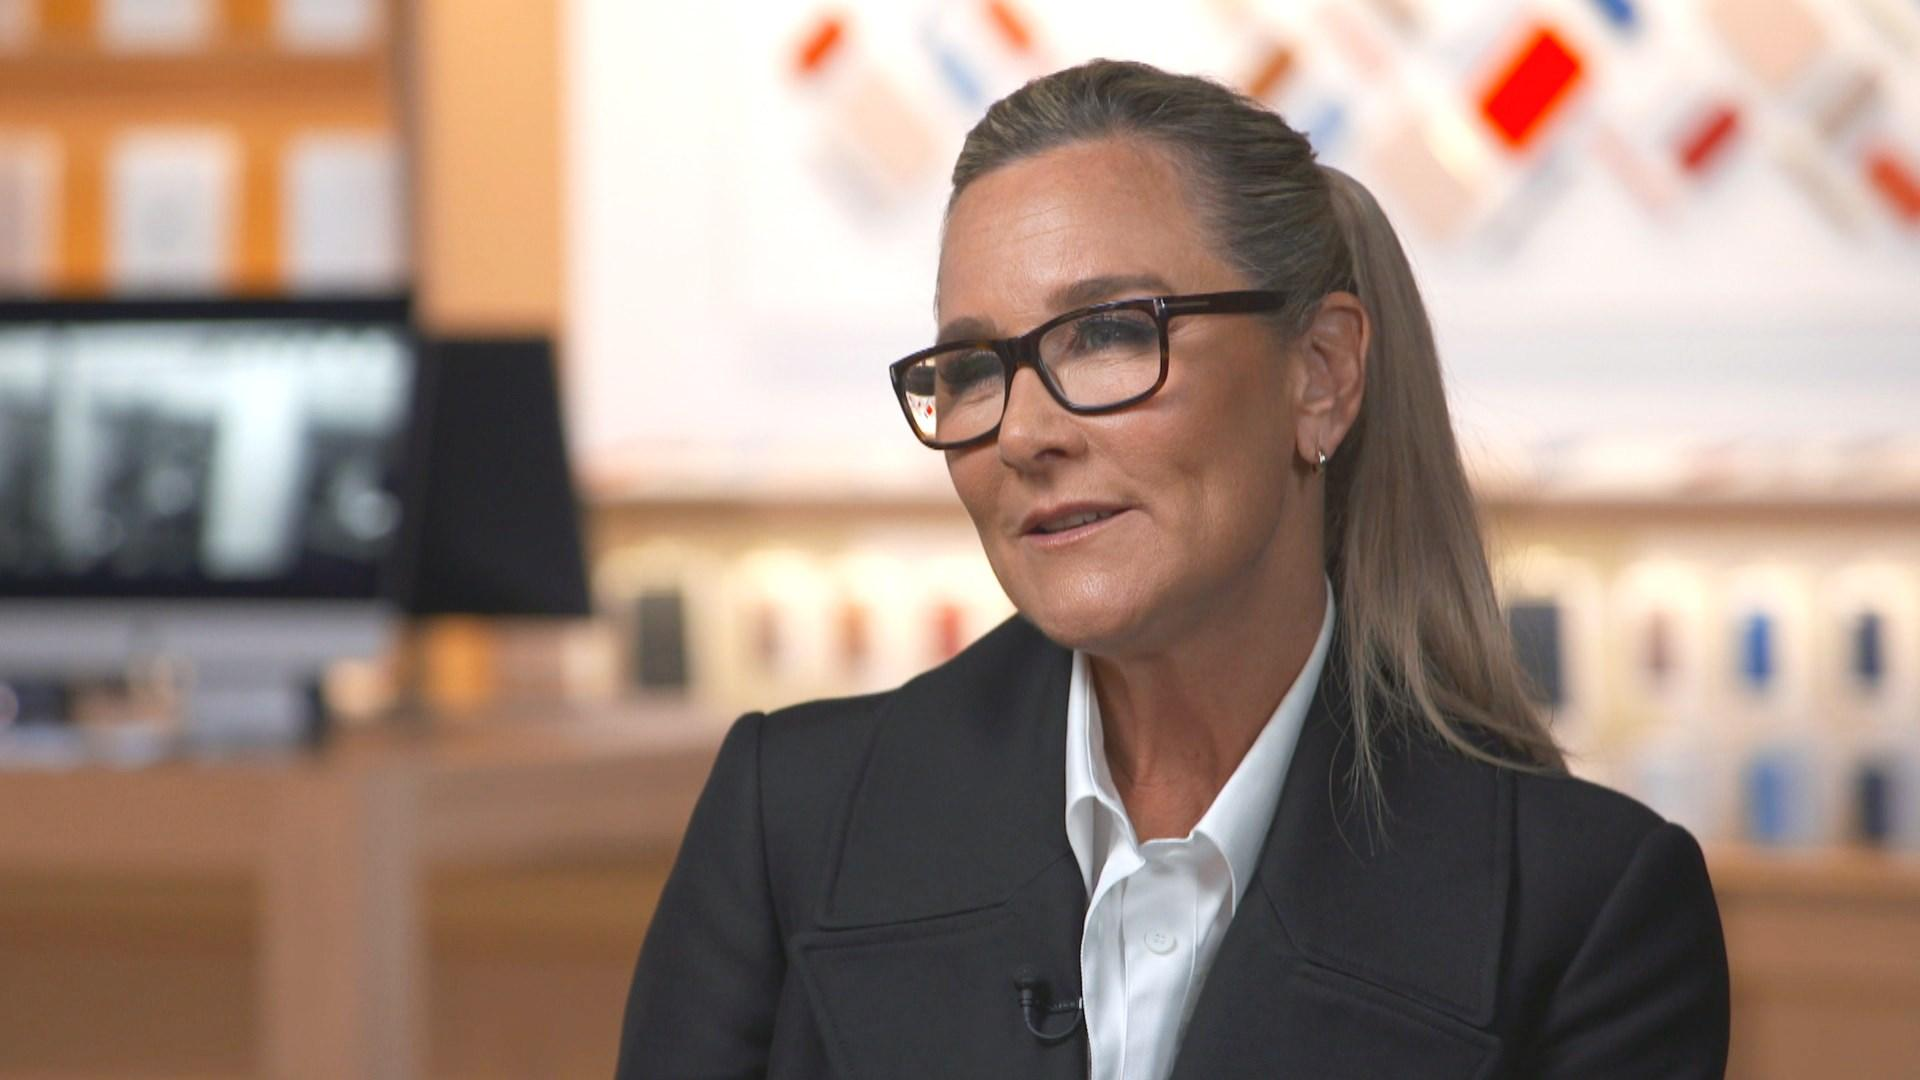 Angela Dip Fotos apple svp of retail angela ahrendts on launch of today at